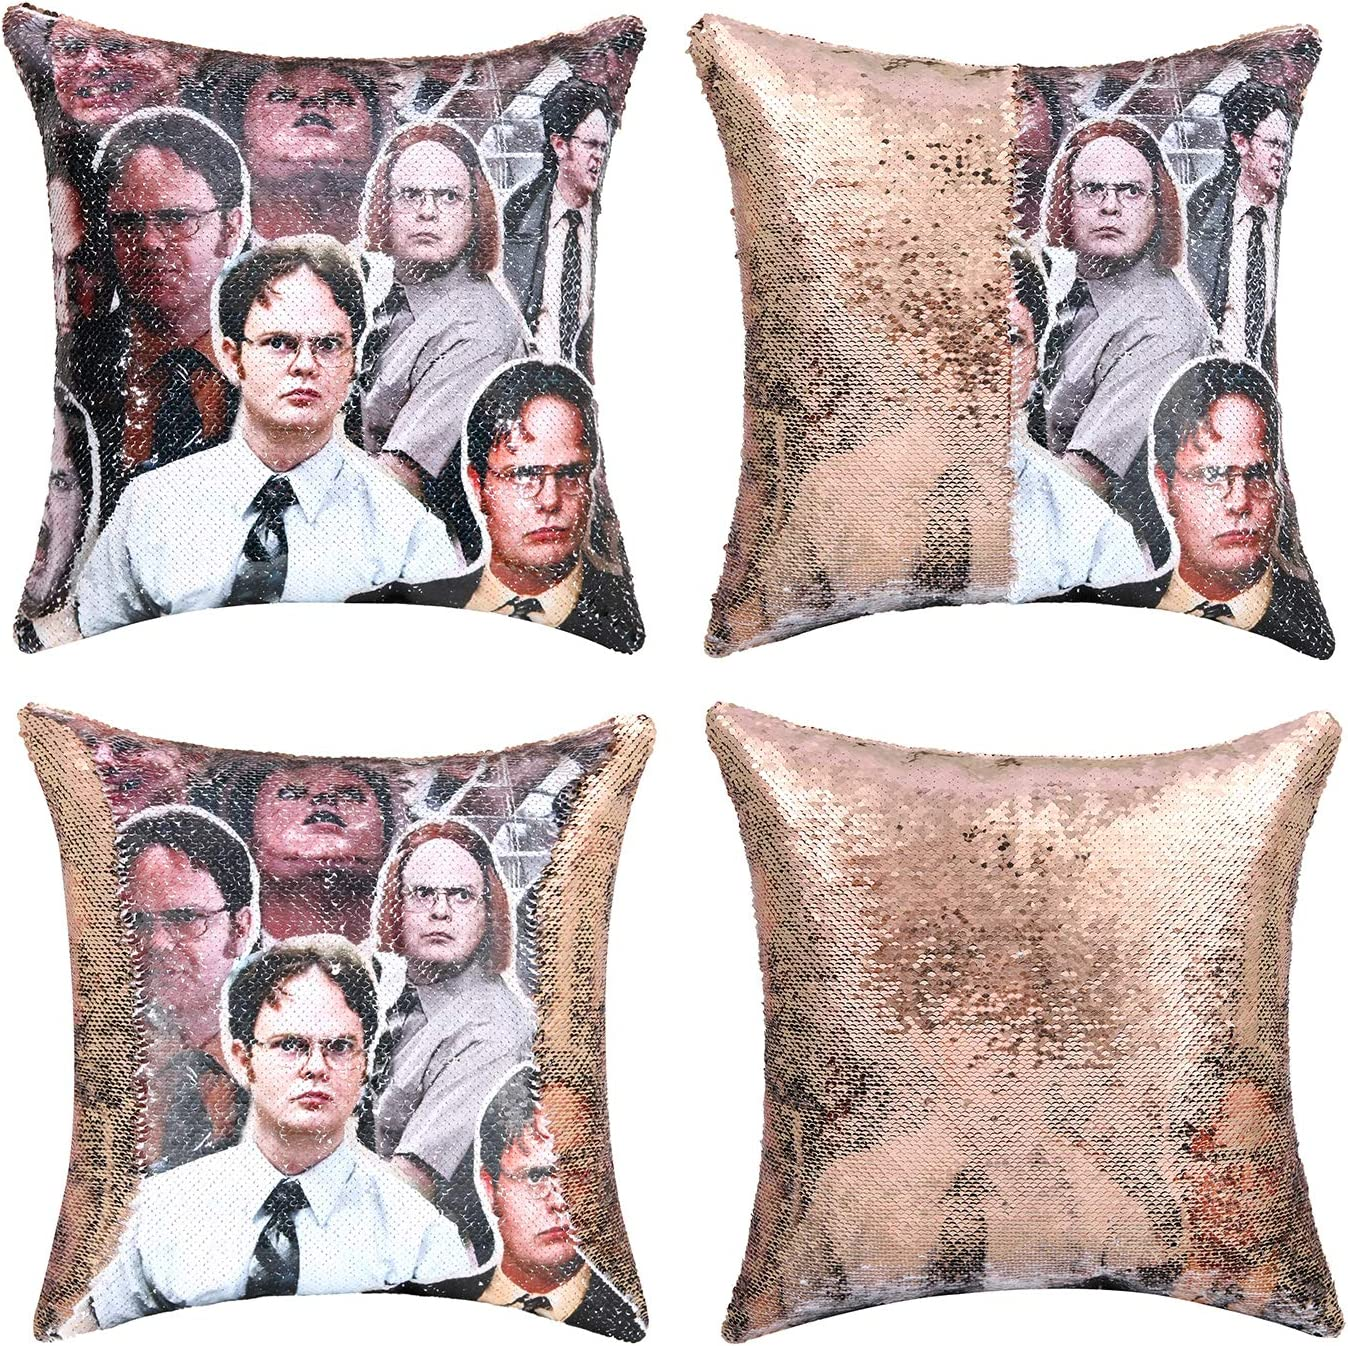 cygnus The Office Dwight Schrute Sequin Pillow Cover Reversible Throw Pillowcase 16x16 inch for Home Couch Decor